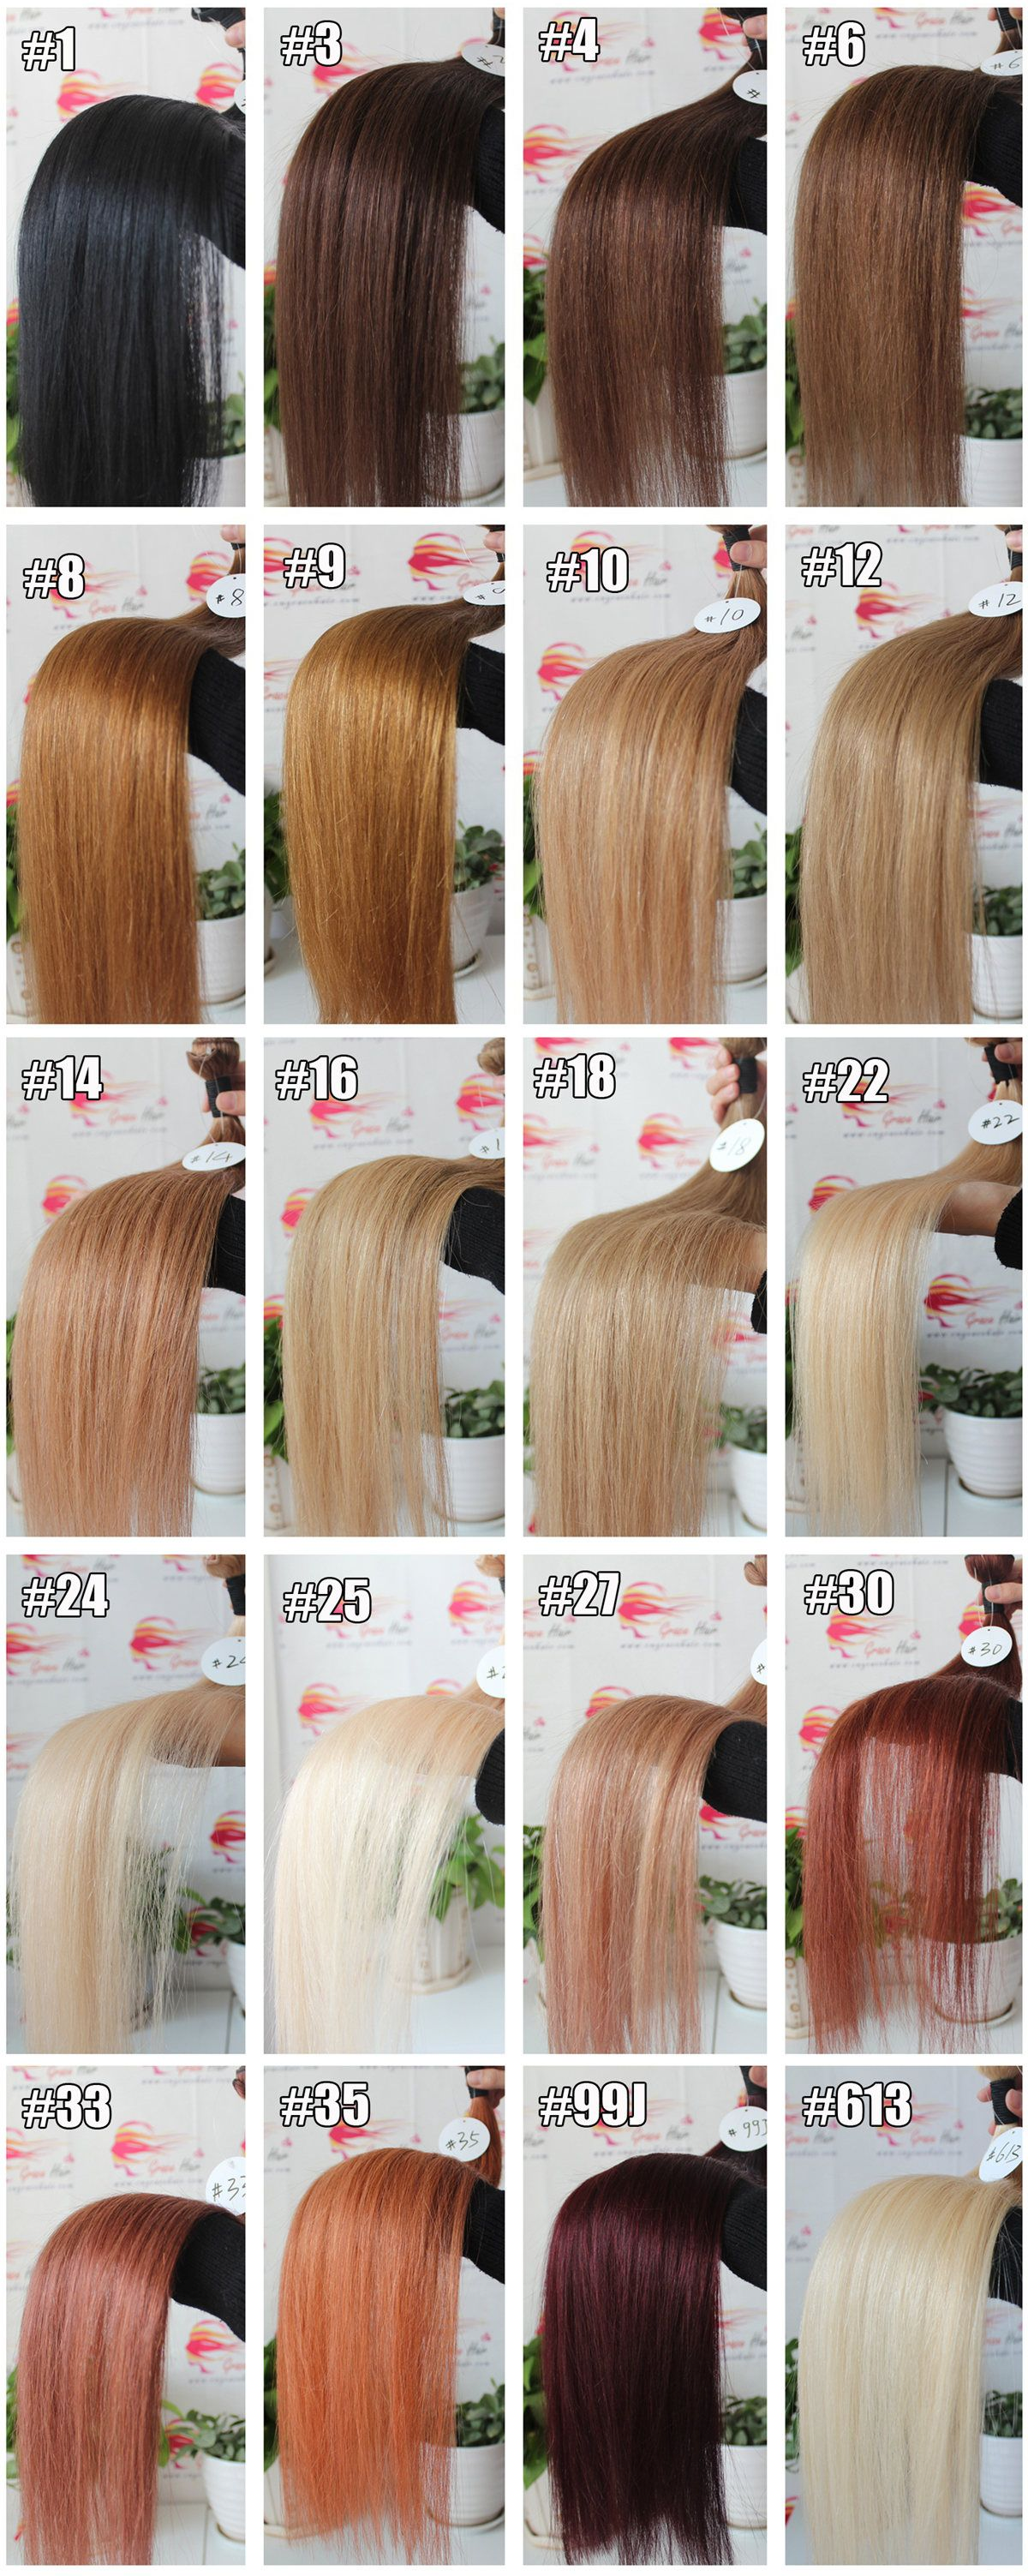 Color chartgrace hair products coltd about grace hair geenschuldenfo Images